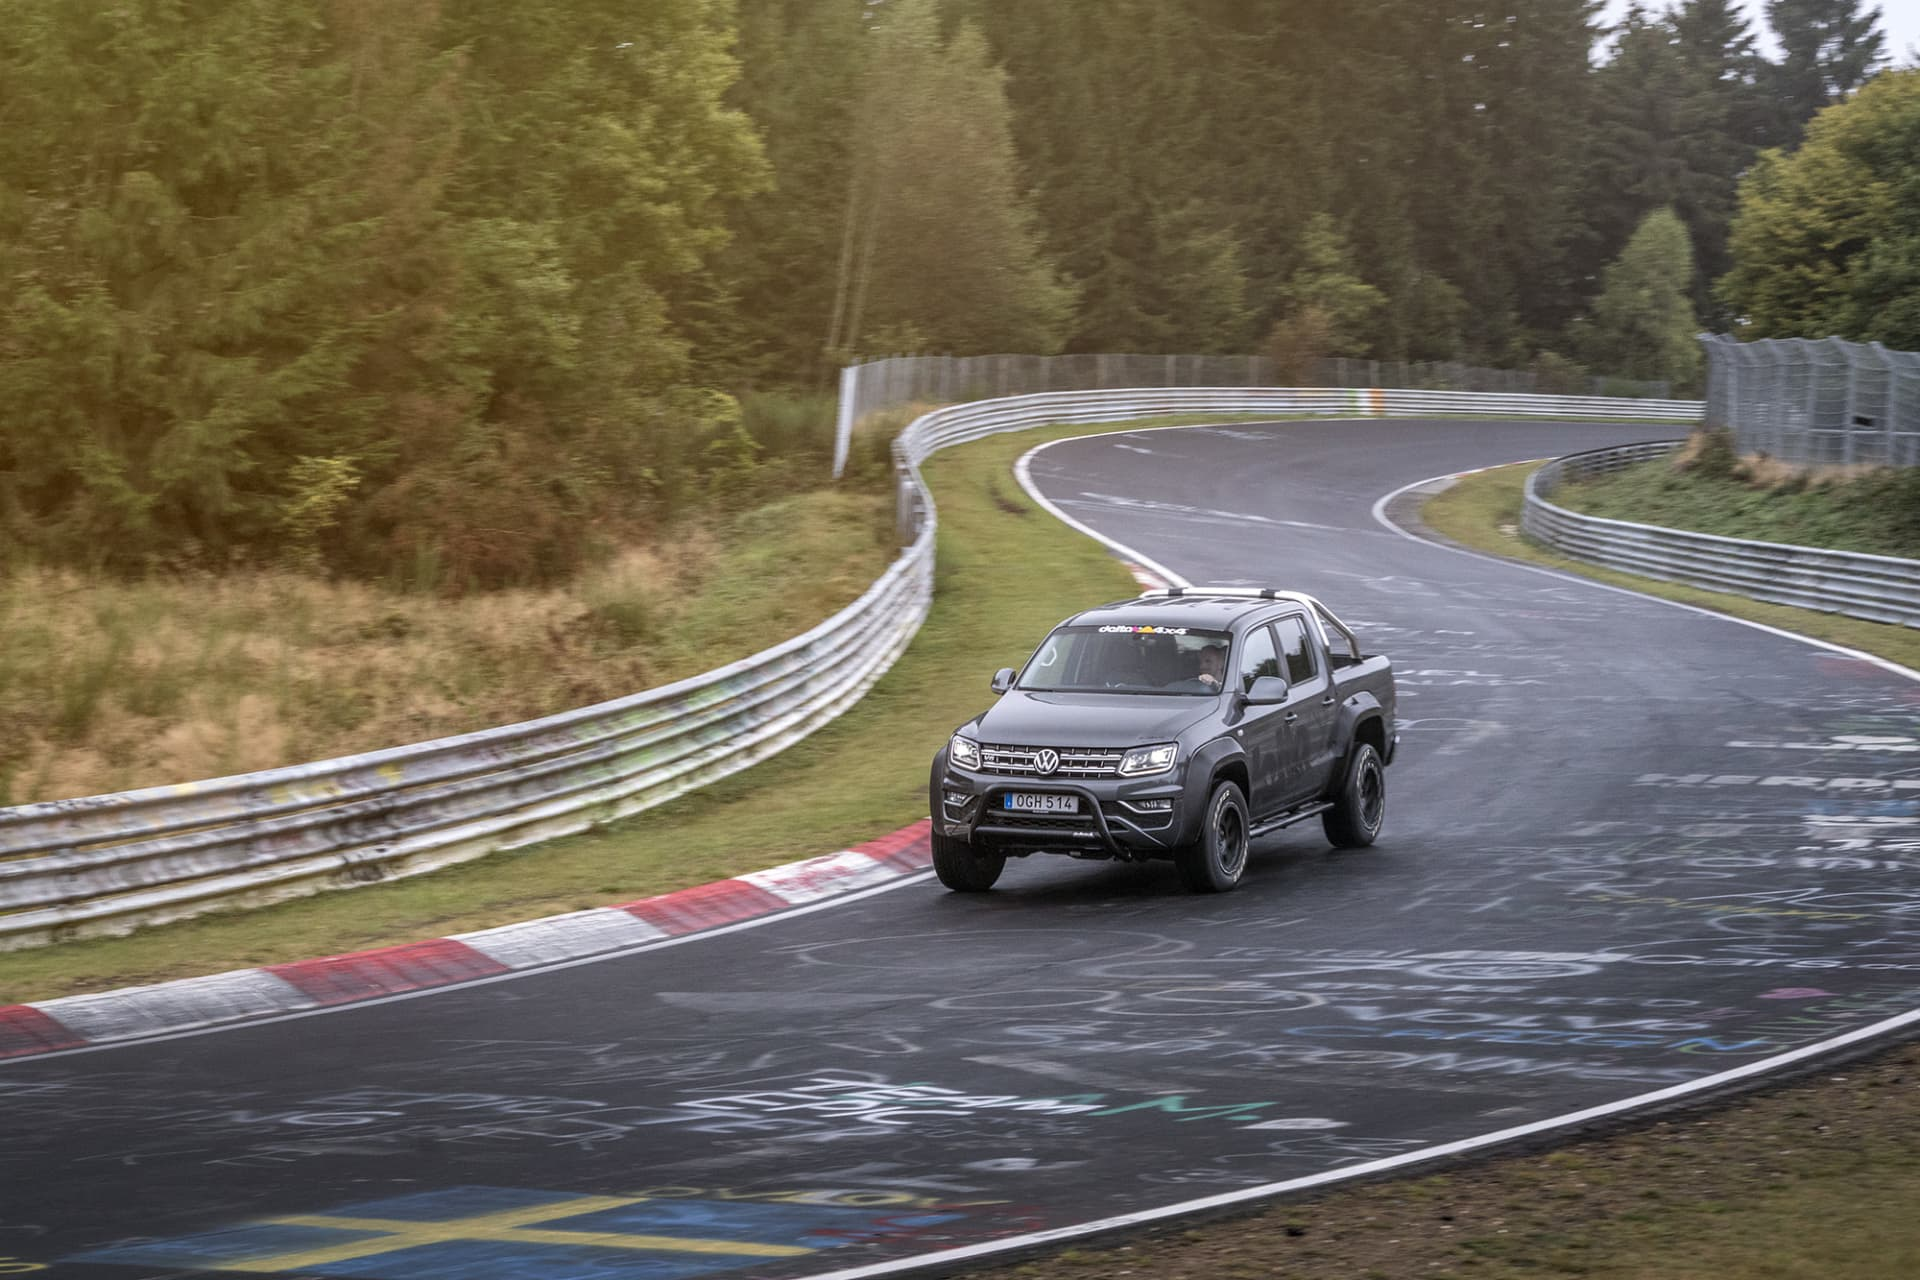 When Delta 4x4 had completed their work, I drove straight to the Nürburgring where I took a couple of laps on the classic North Loop.